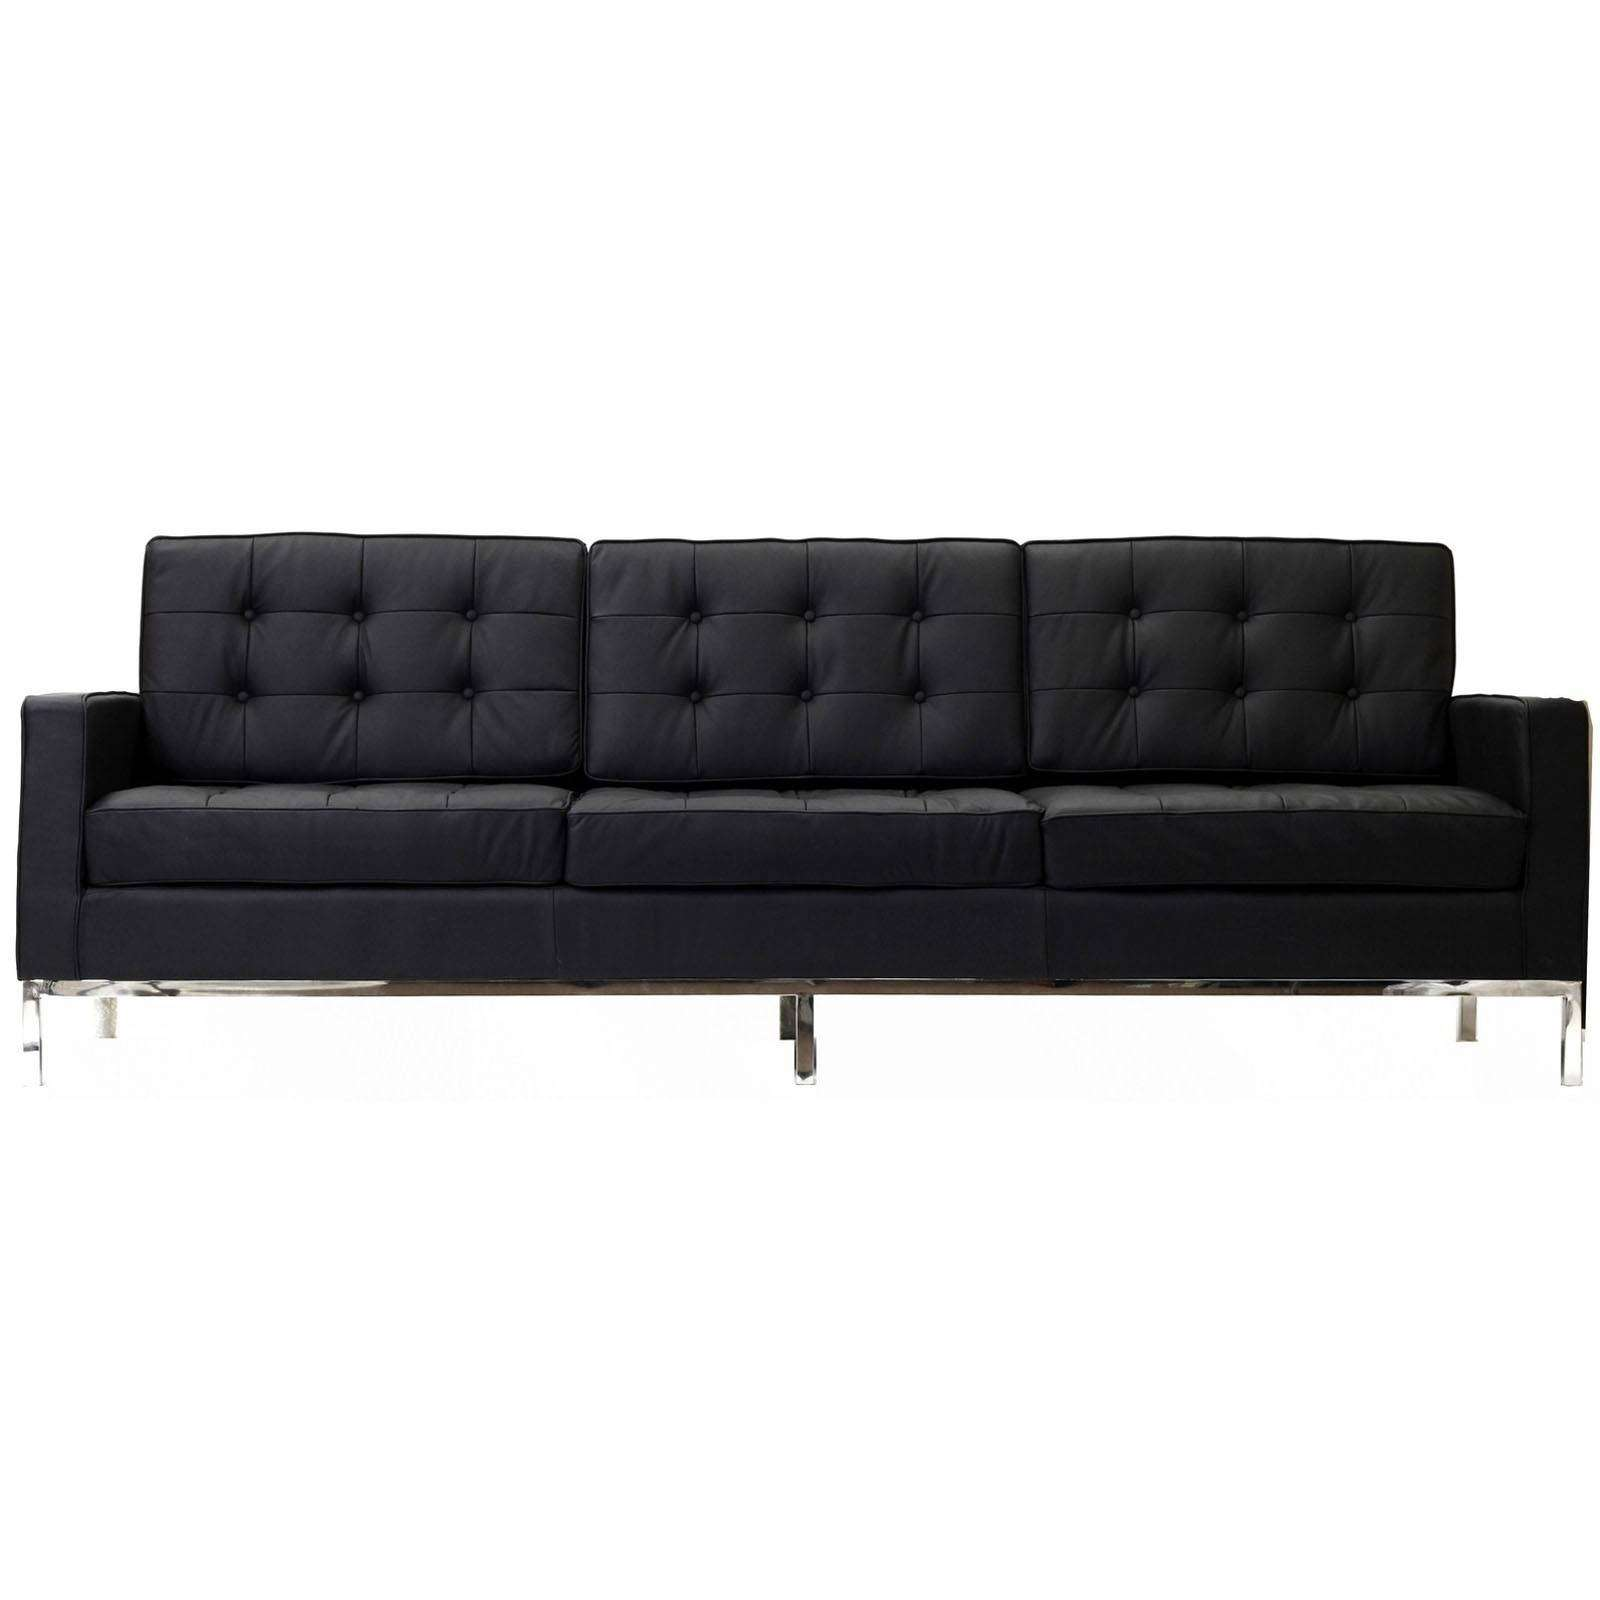 Modern Leather Furniture Of Florence Knoll Style Sofa Couch Leather